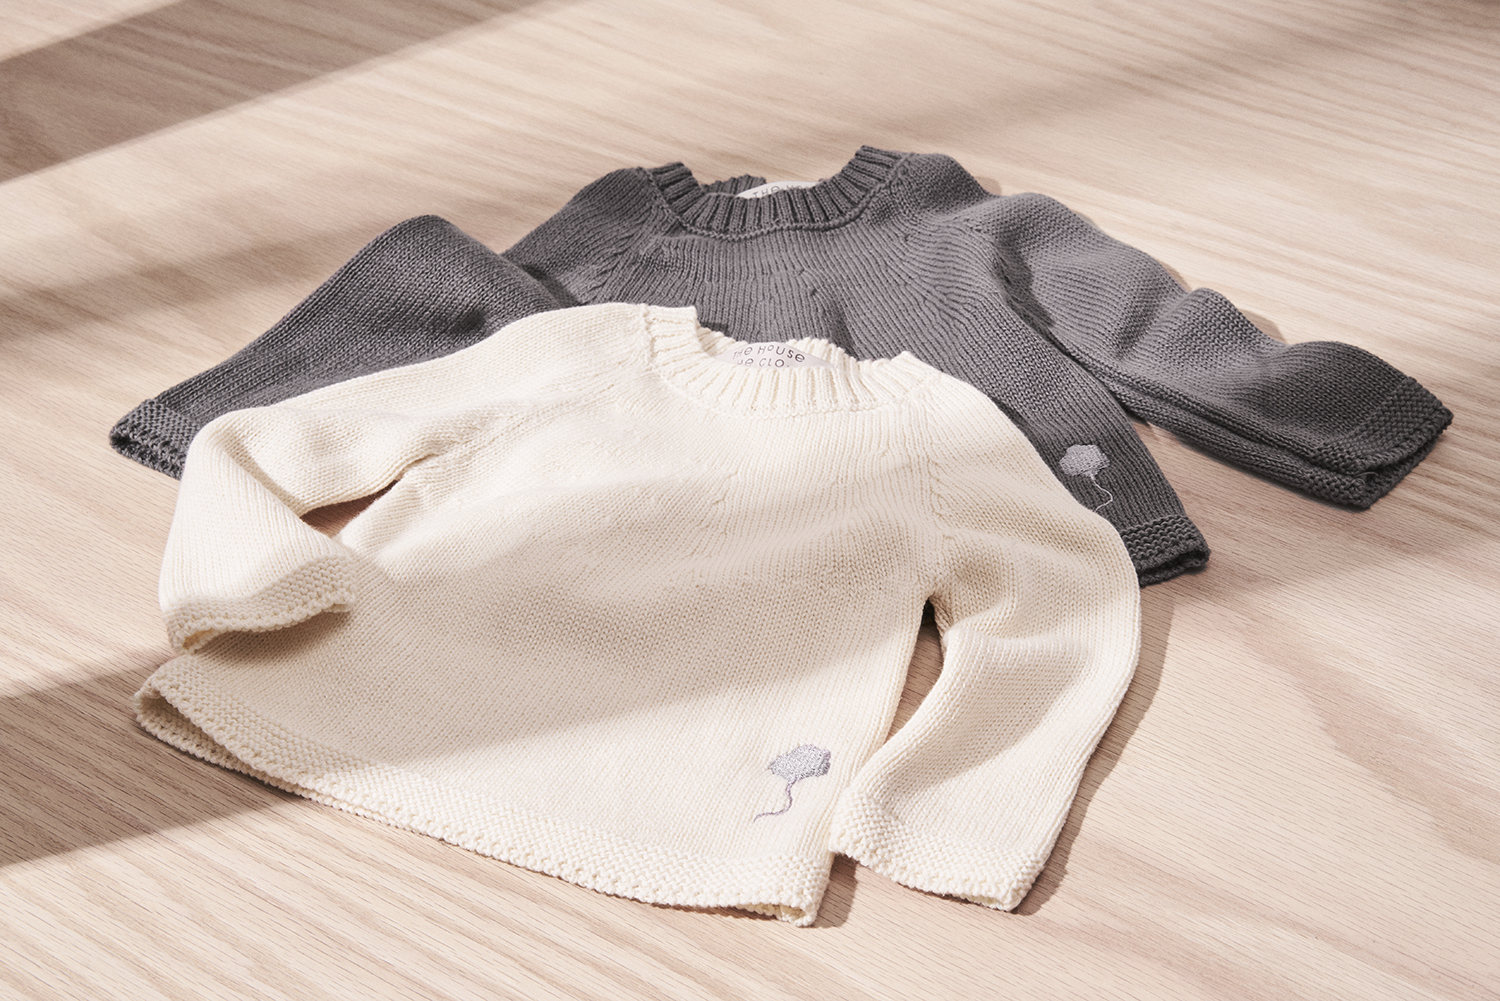 Neel Sweaters in Cumulus Grey and White Cotton.jpg